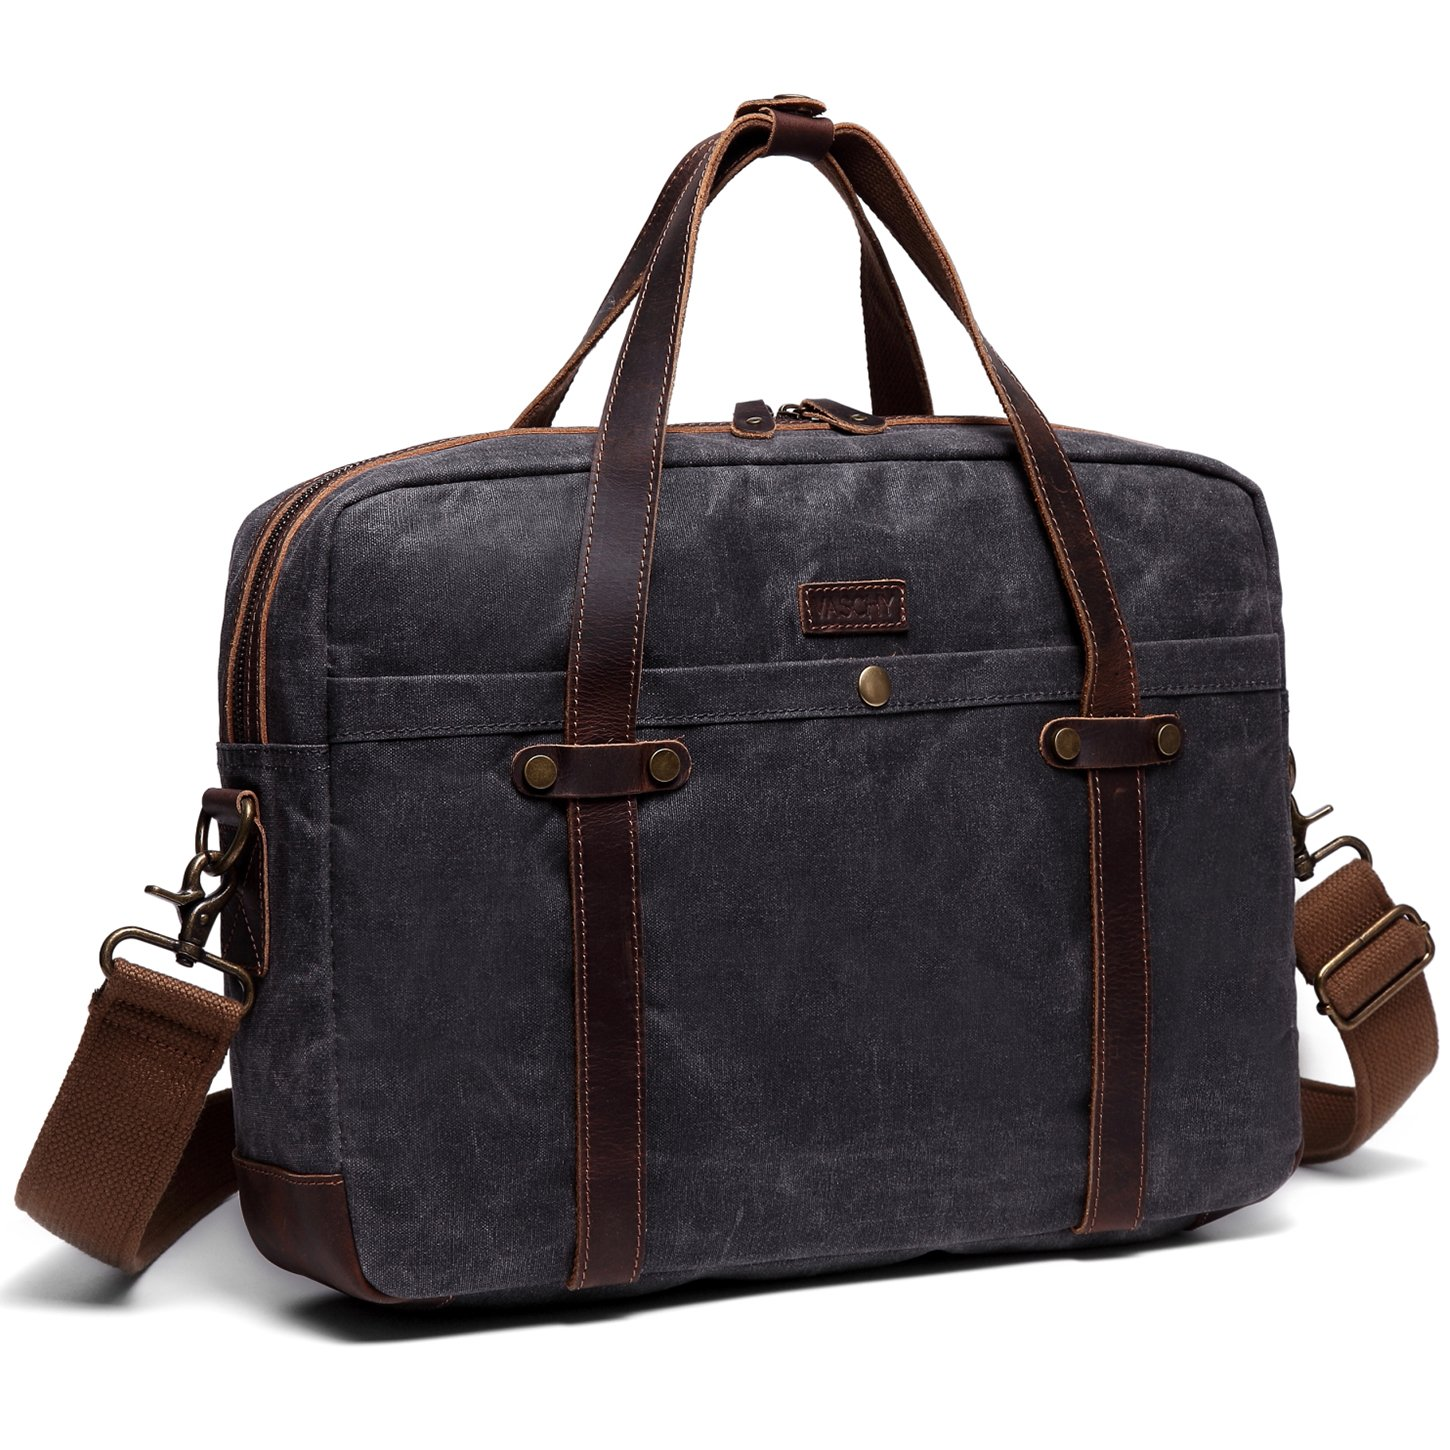 Briefcase for Men,Vaschy Water Resistant Messenger Bag fits 15.6 Laptop Shoulder Bag for Men